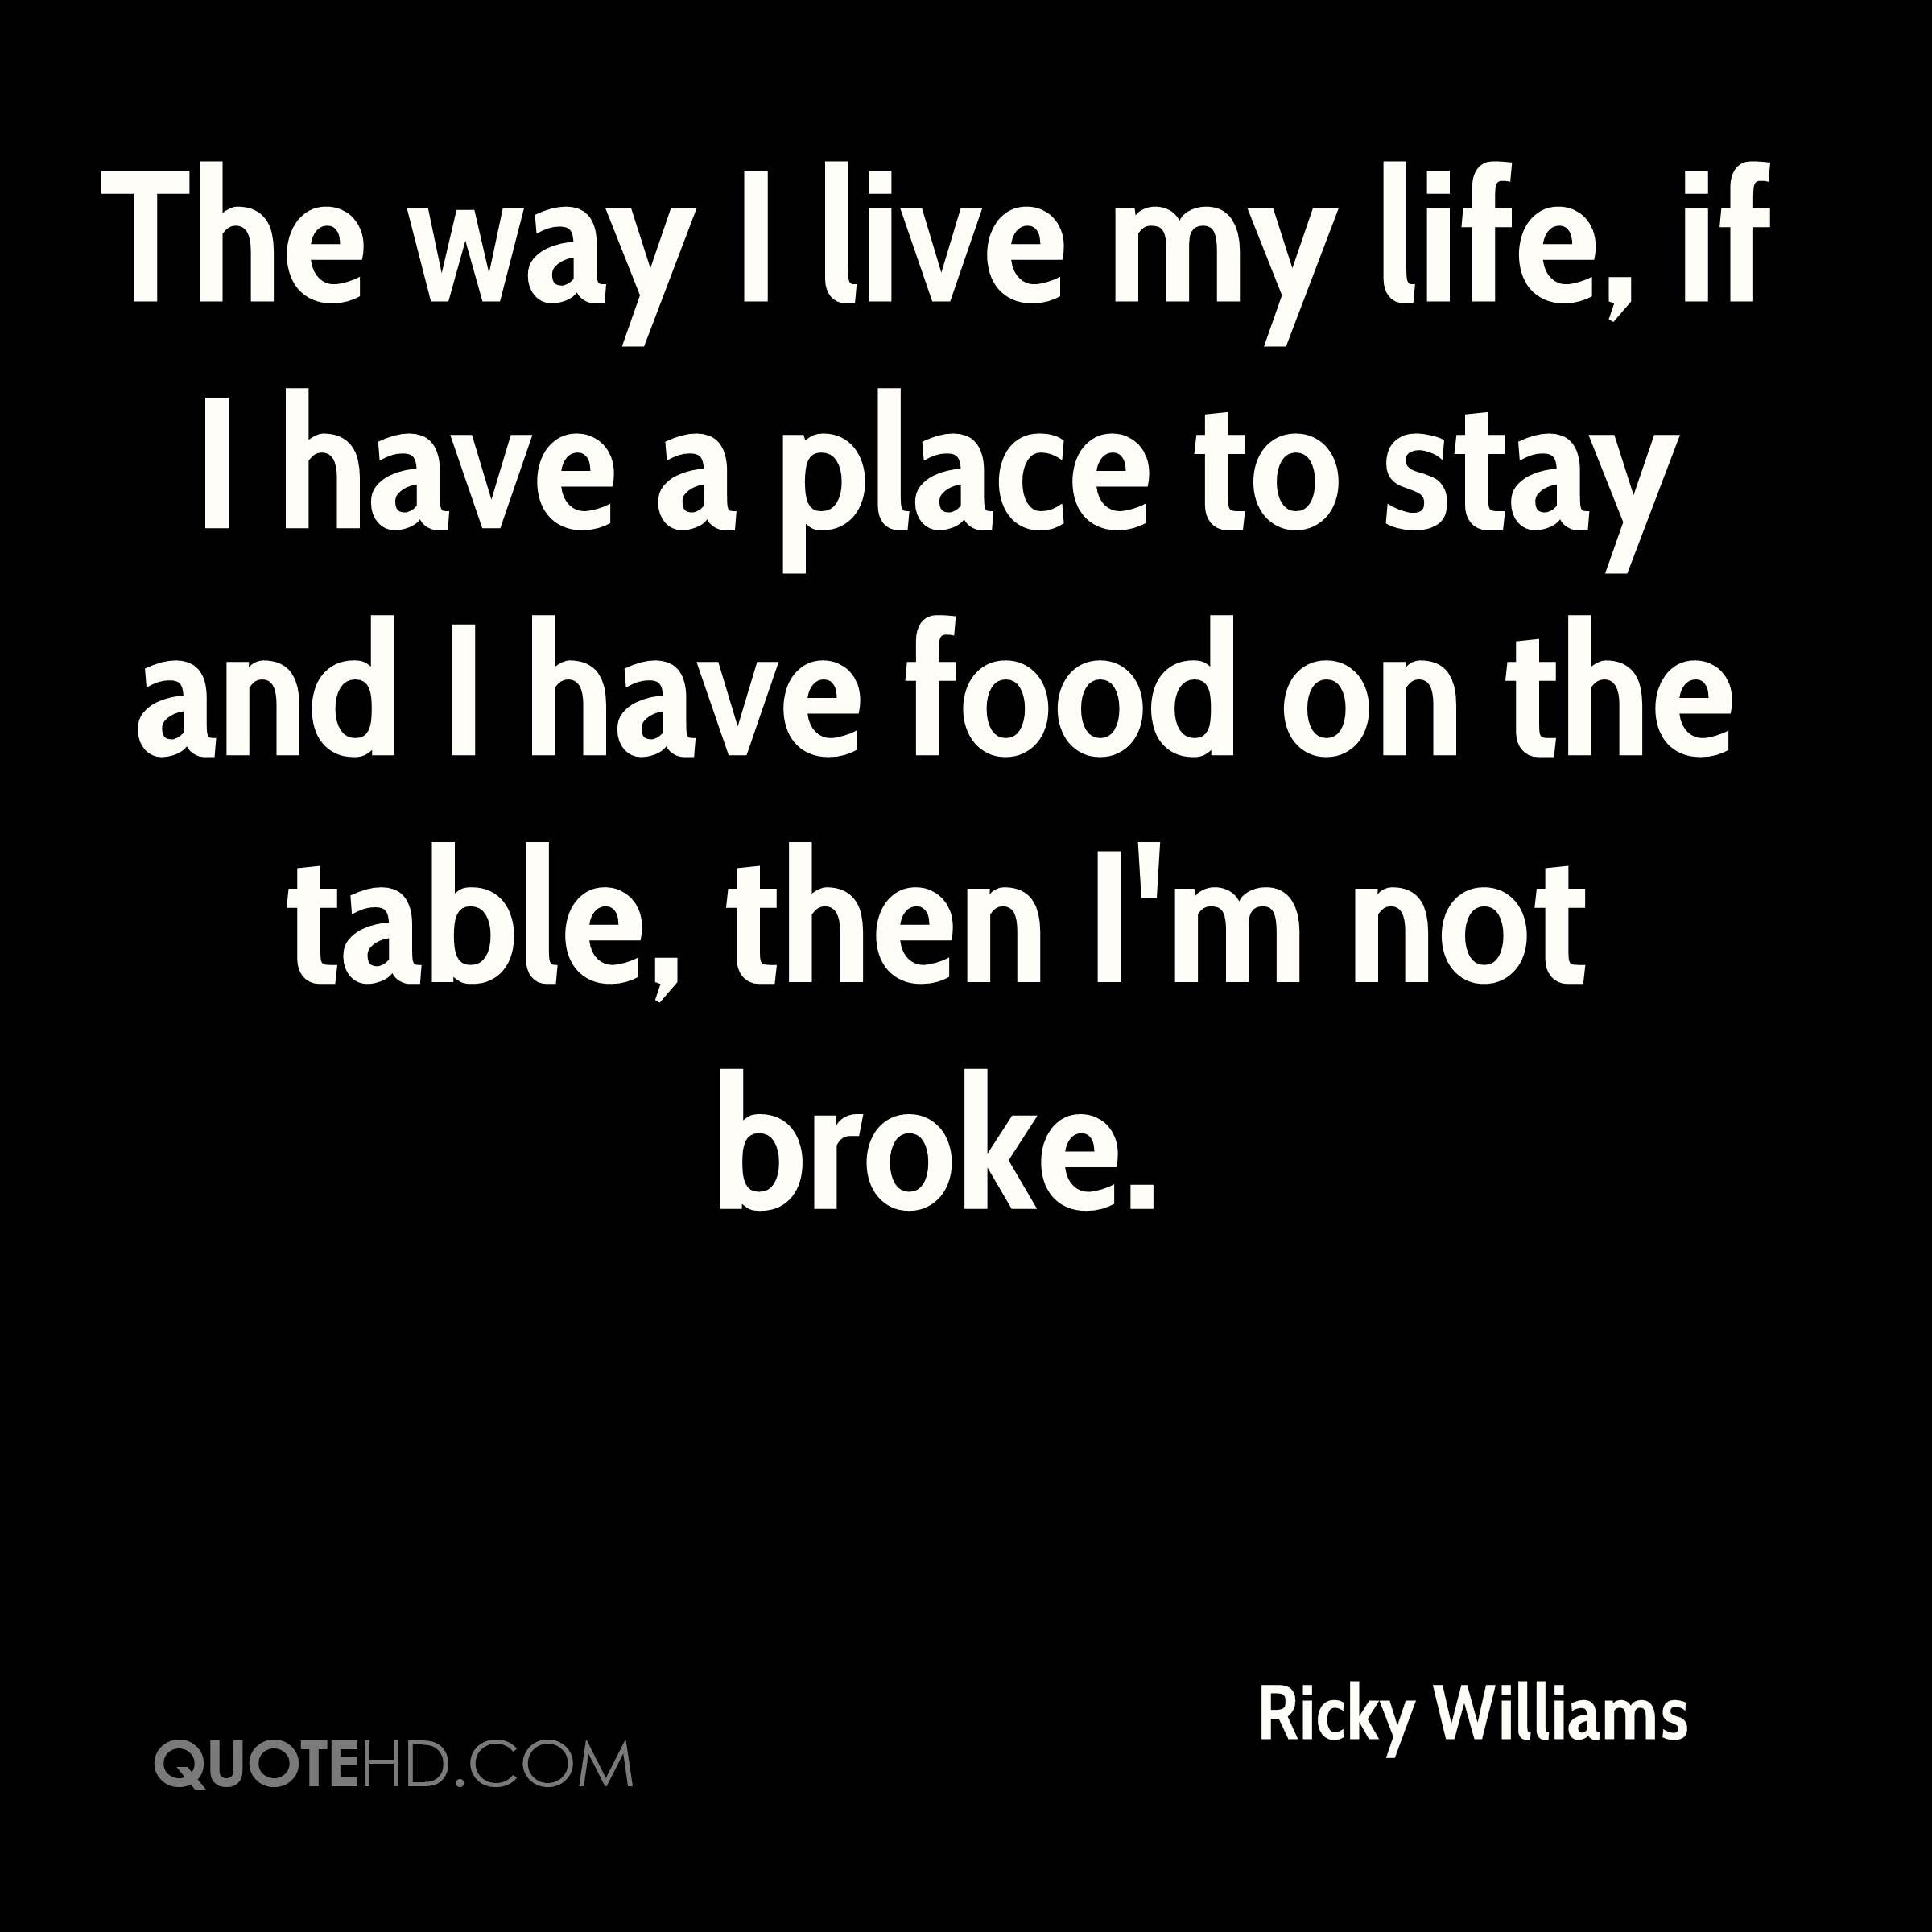 Ricky Williams Life Quotes Quotehd